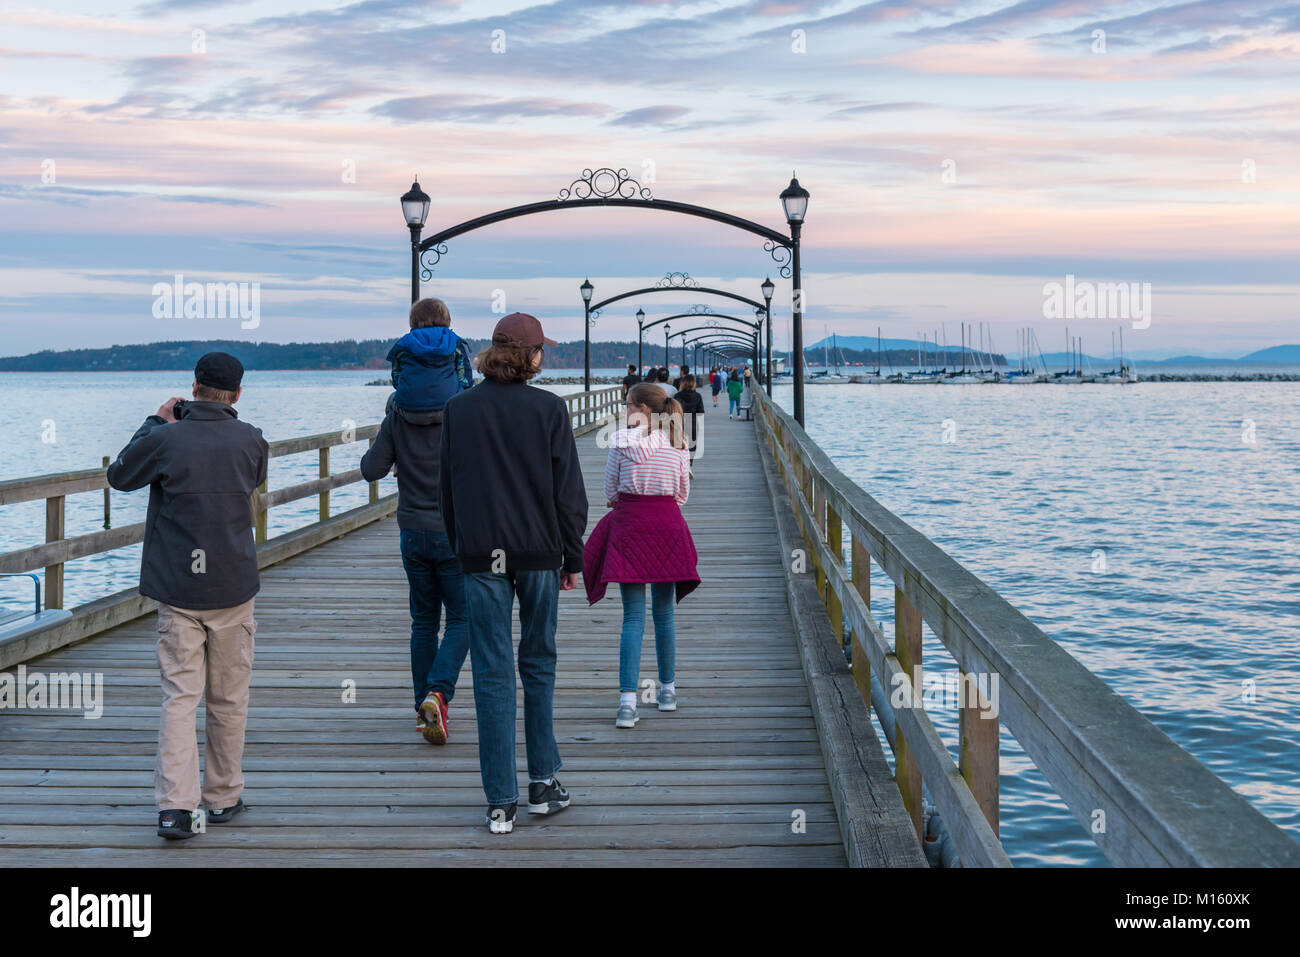 A family walks down the White Rock Pier at sunset. The pier, built in the 1920's, is a popular tourist attraction. Stock Photo